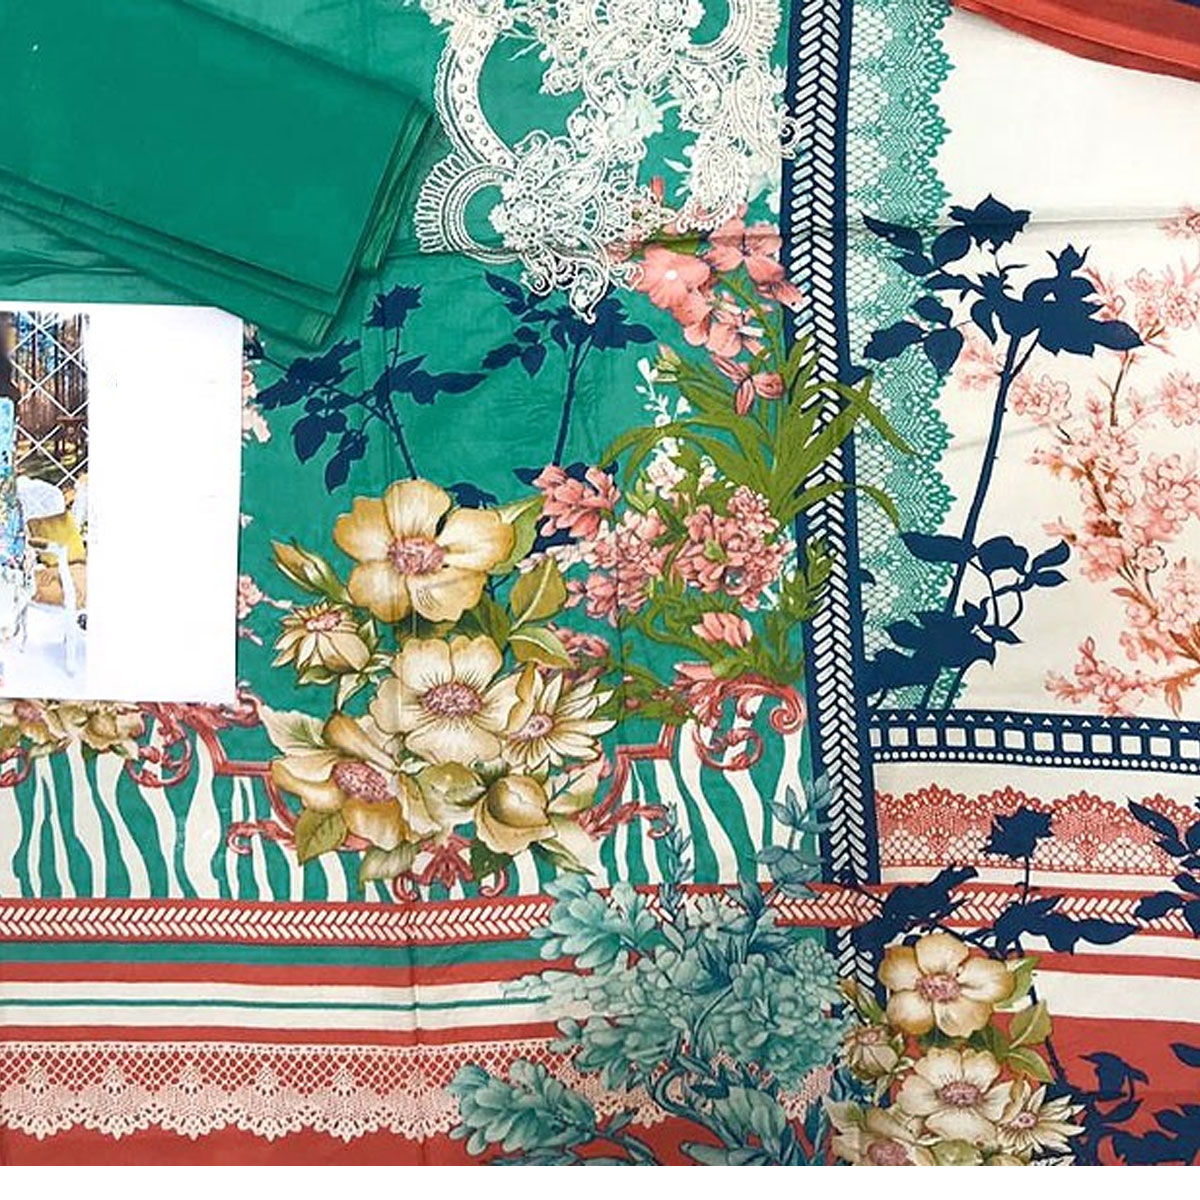 Pakistani Embroidered Lawn Suit 2020 with Chiffon Dupatta (DRL-415) (Unstitched) Gallery Image 3